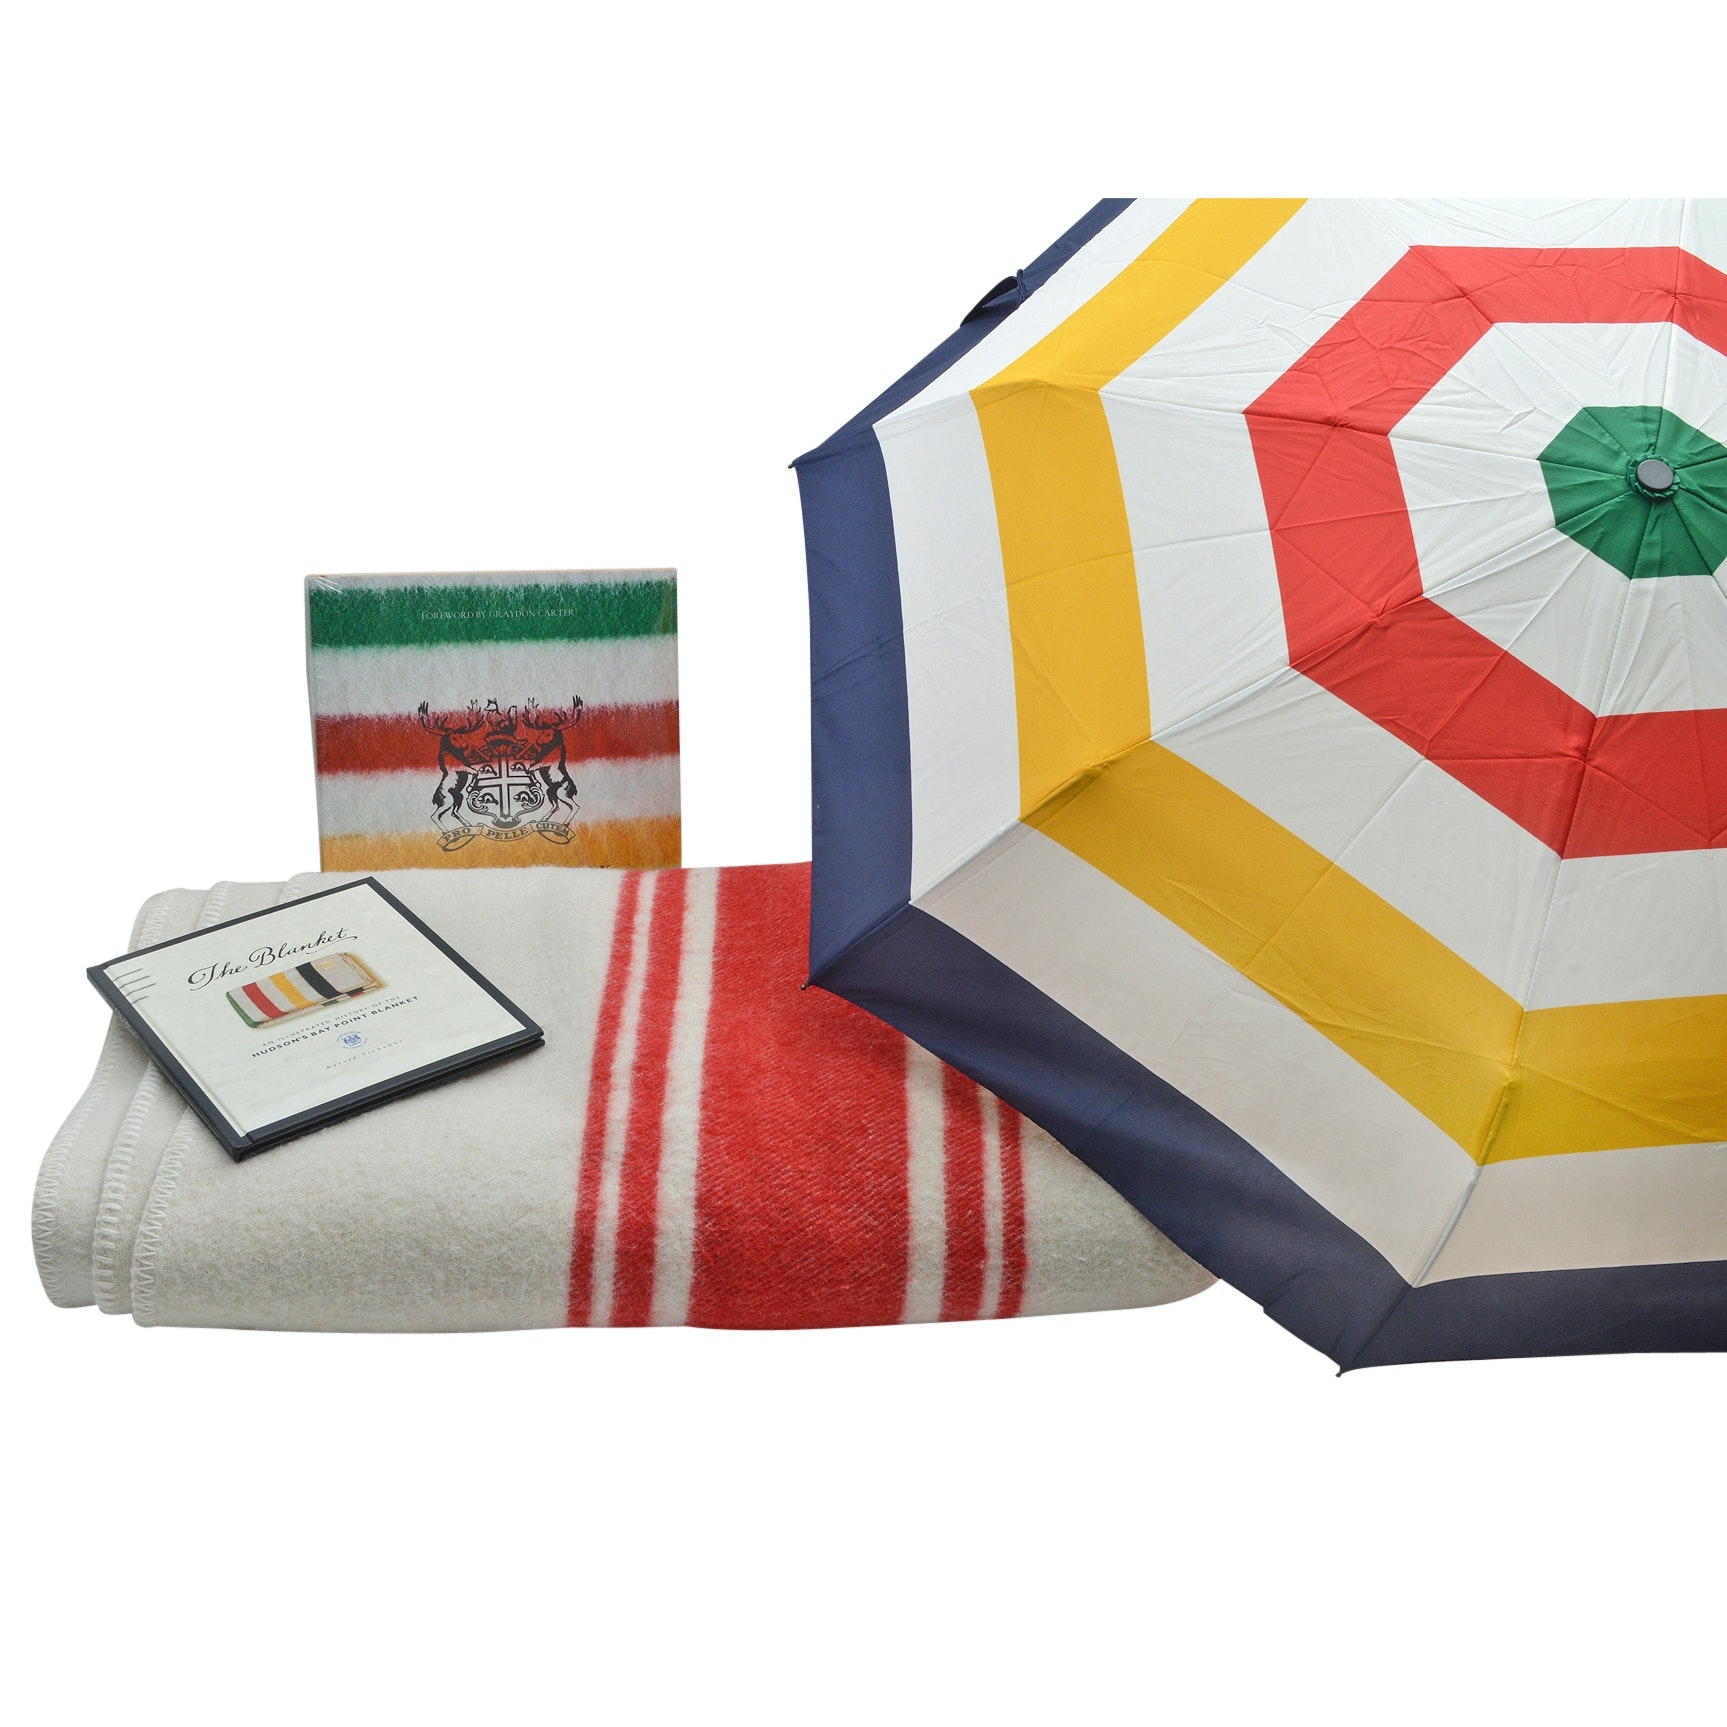 Hudson's Bay Collection with Umbrella, Books and Wool Blanket